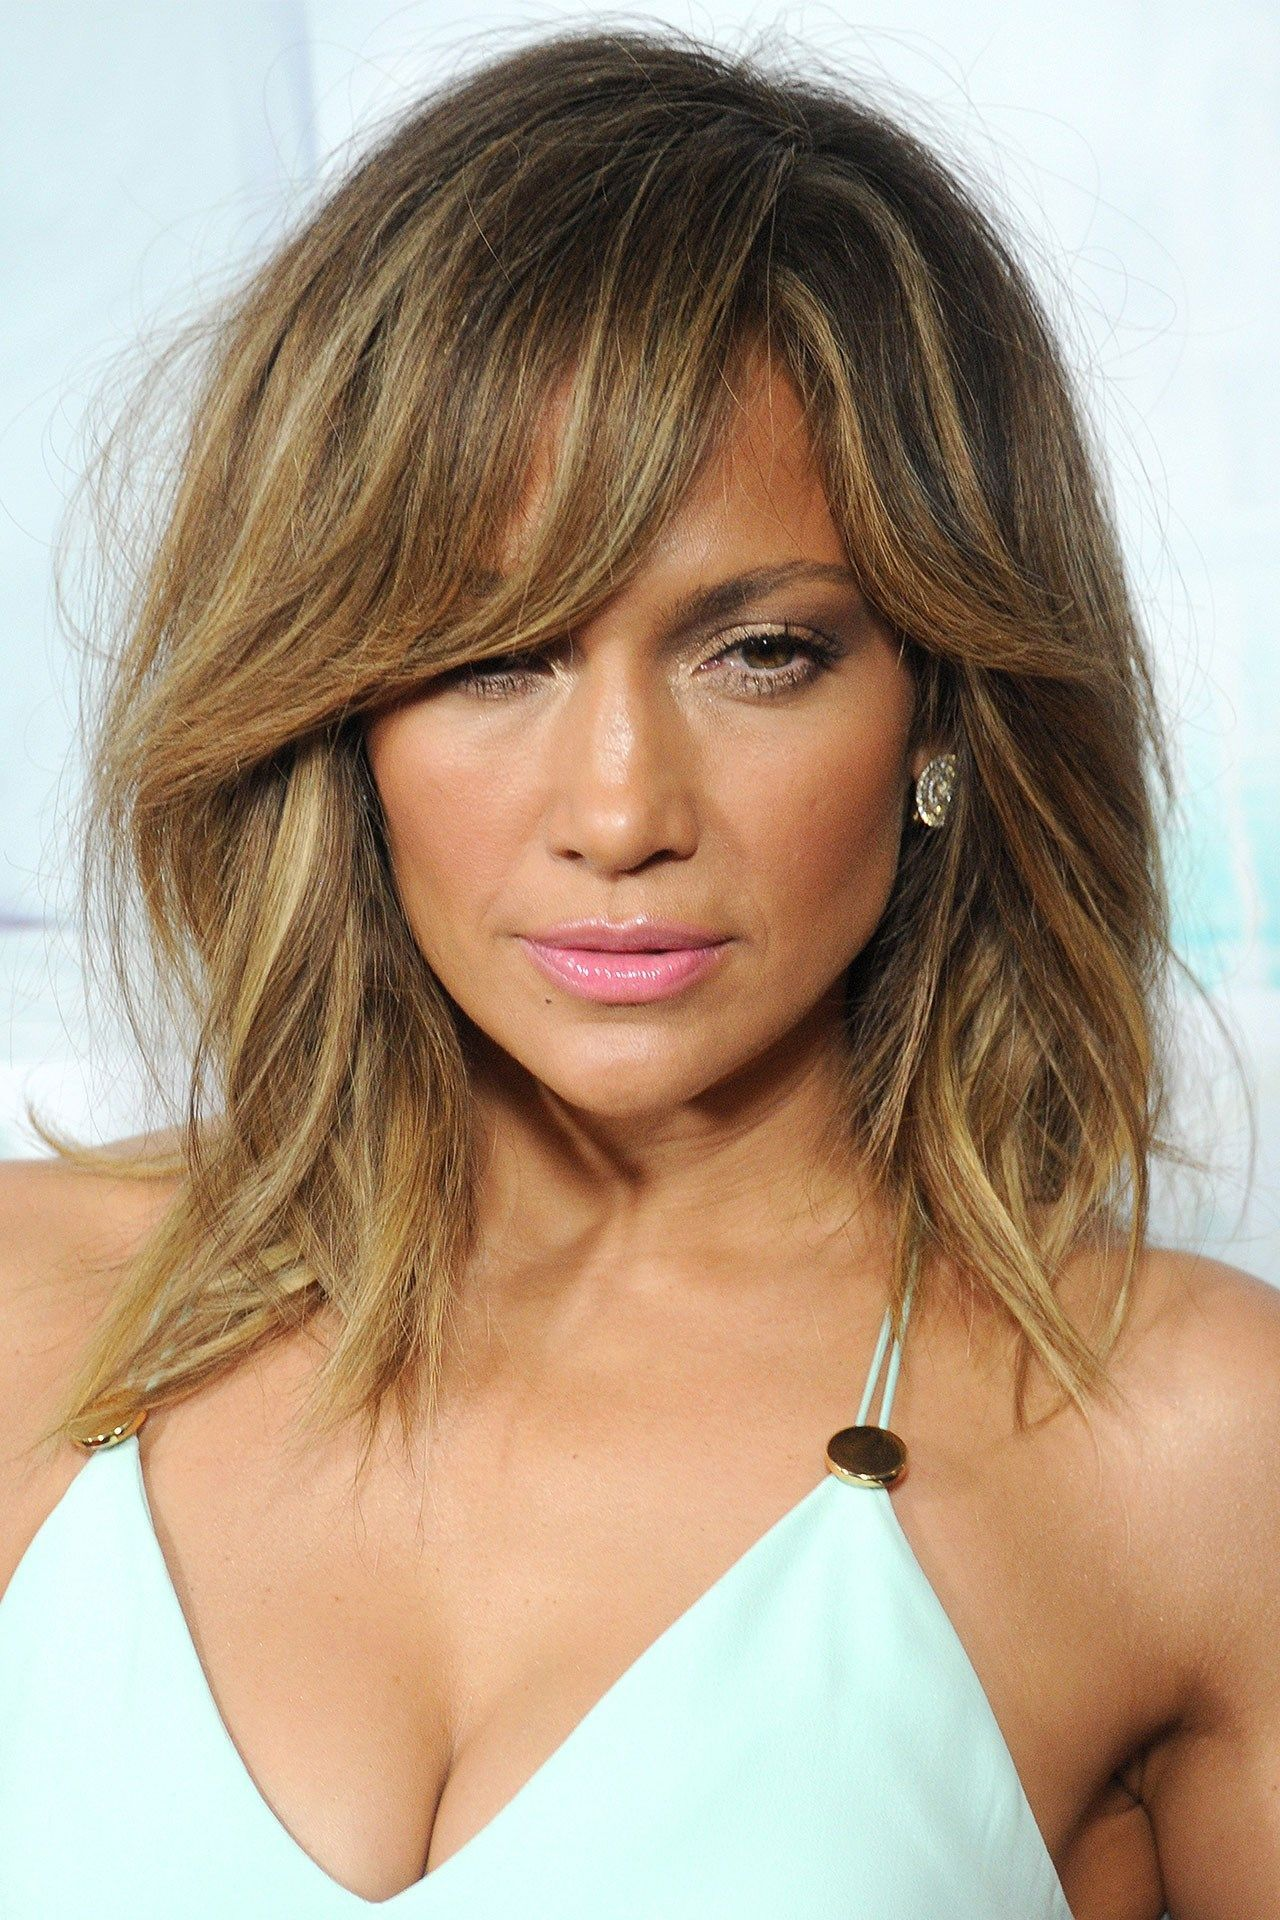 Coiffure Cheveux Mi Long Et Frange Jennifer Lopez The Best Beauty Looks Over The Years